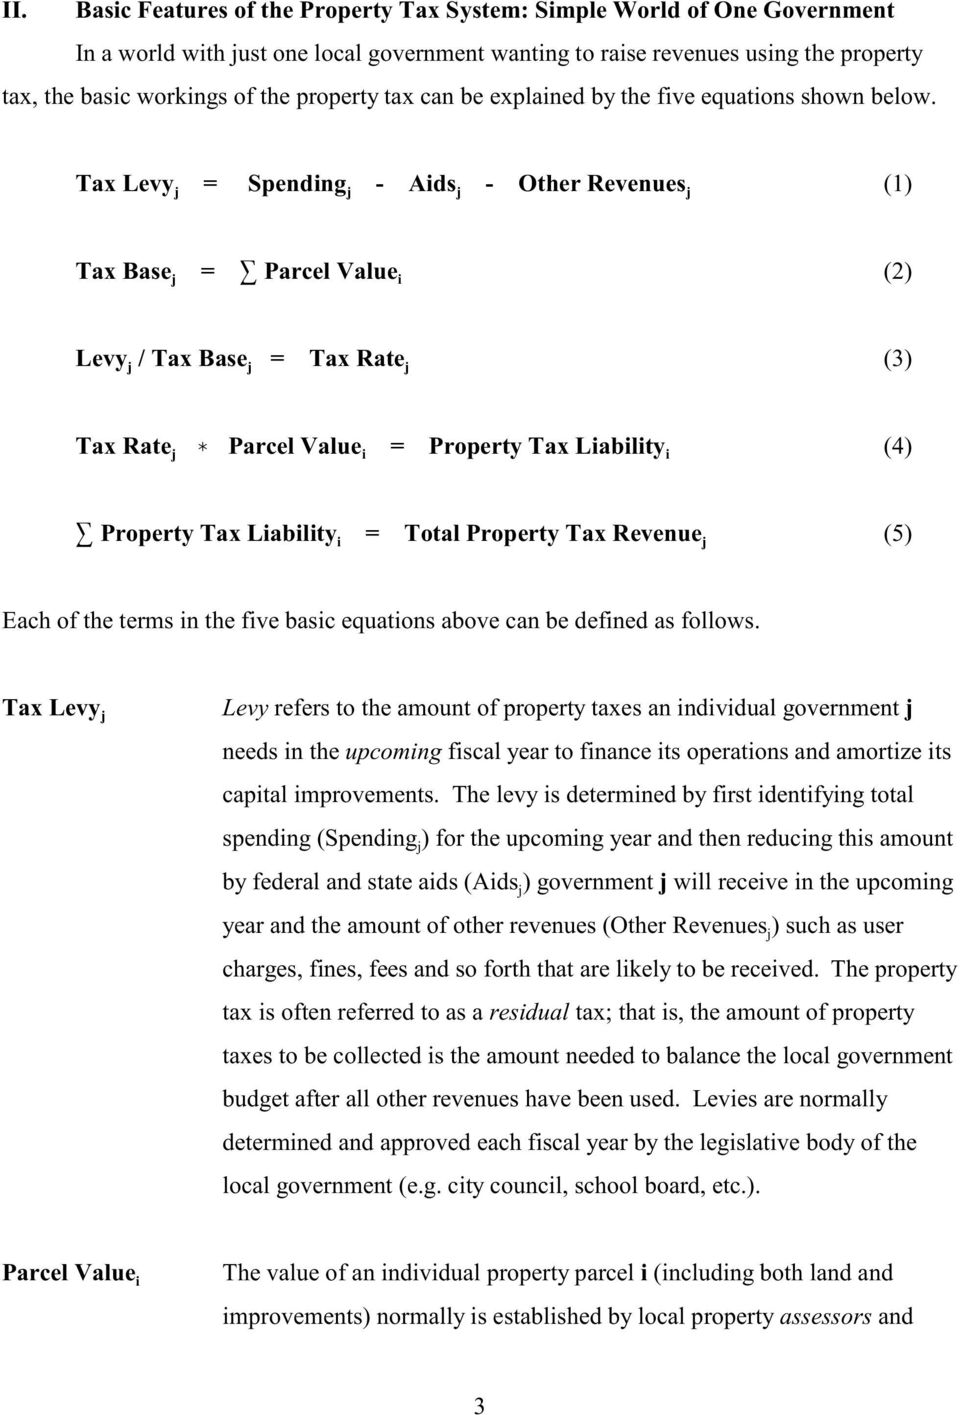 Tax Levy j = Spending j - Aids j - Other Revenues j (1) Tax Base = Parcel Value (2) j i Levy j / Tax Base j = Tax Rate j (3) Tax Rate j Parcel Value i = Property Tax Liability i (4) Property Tax